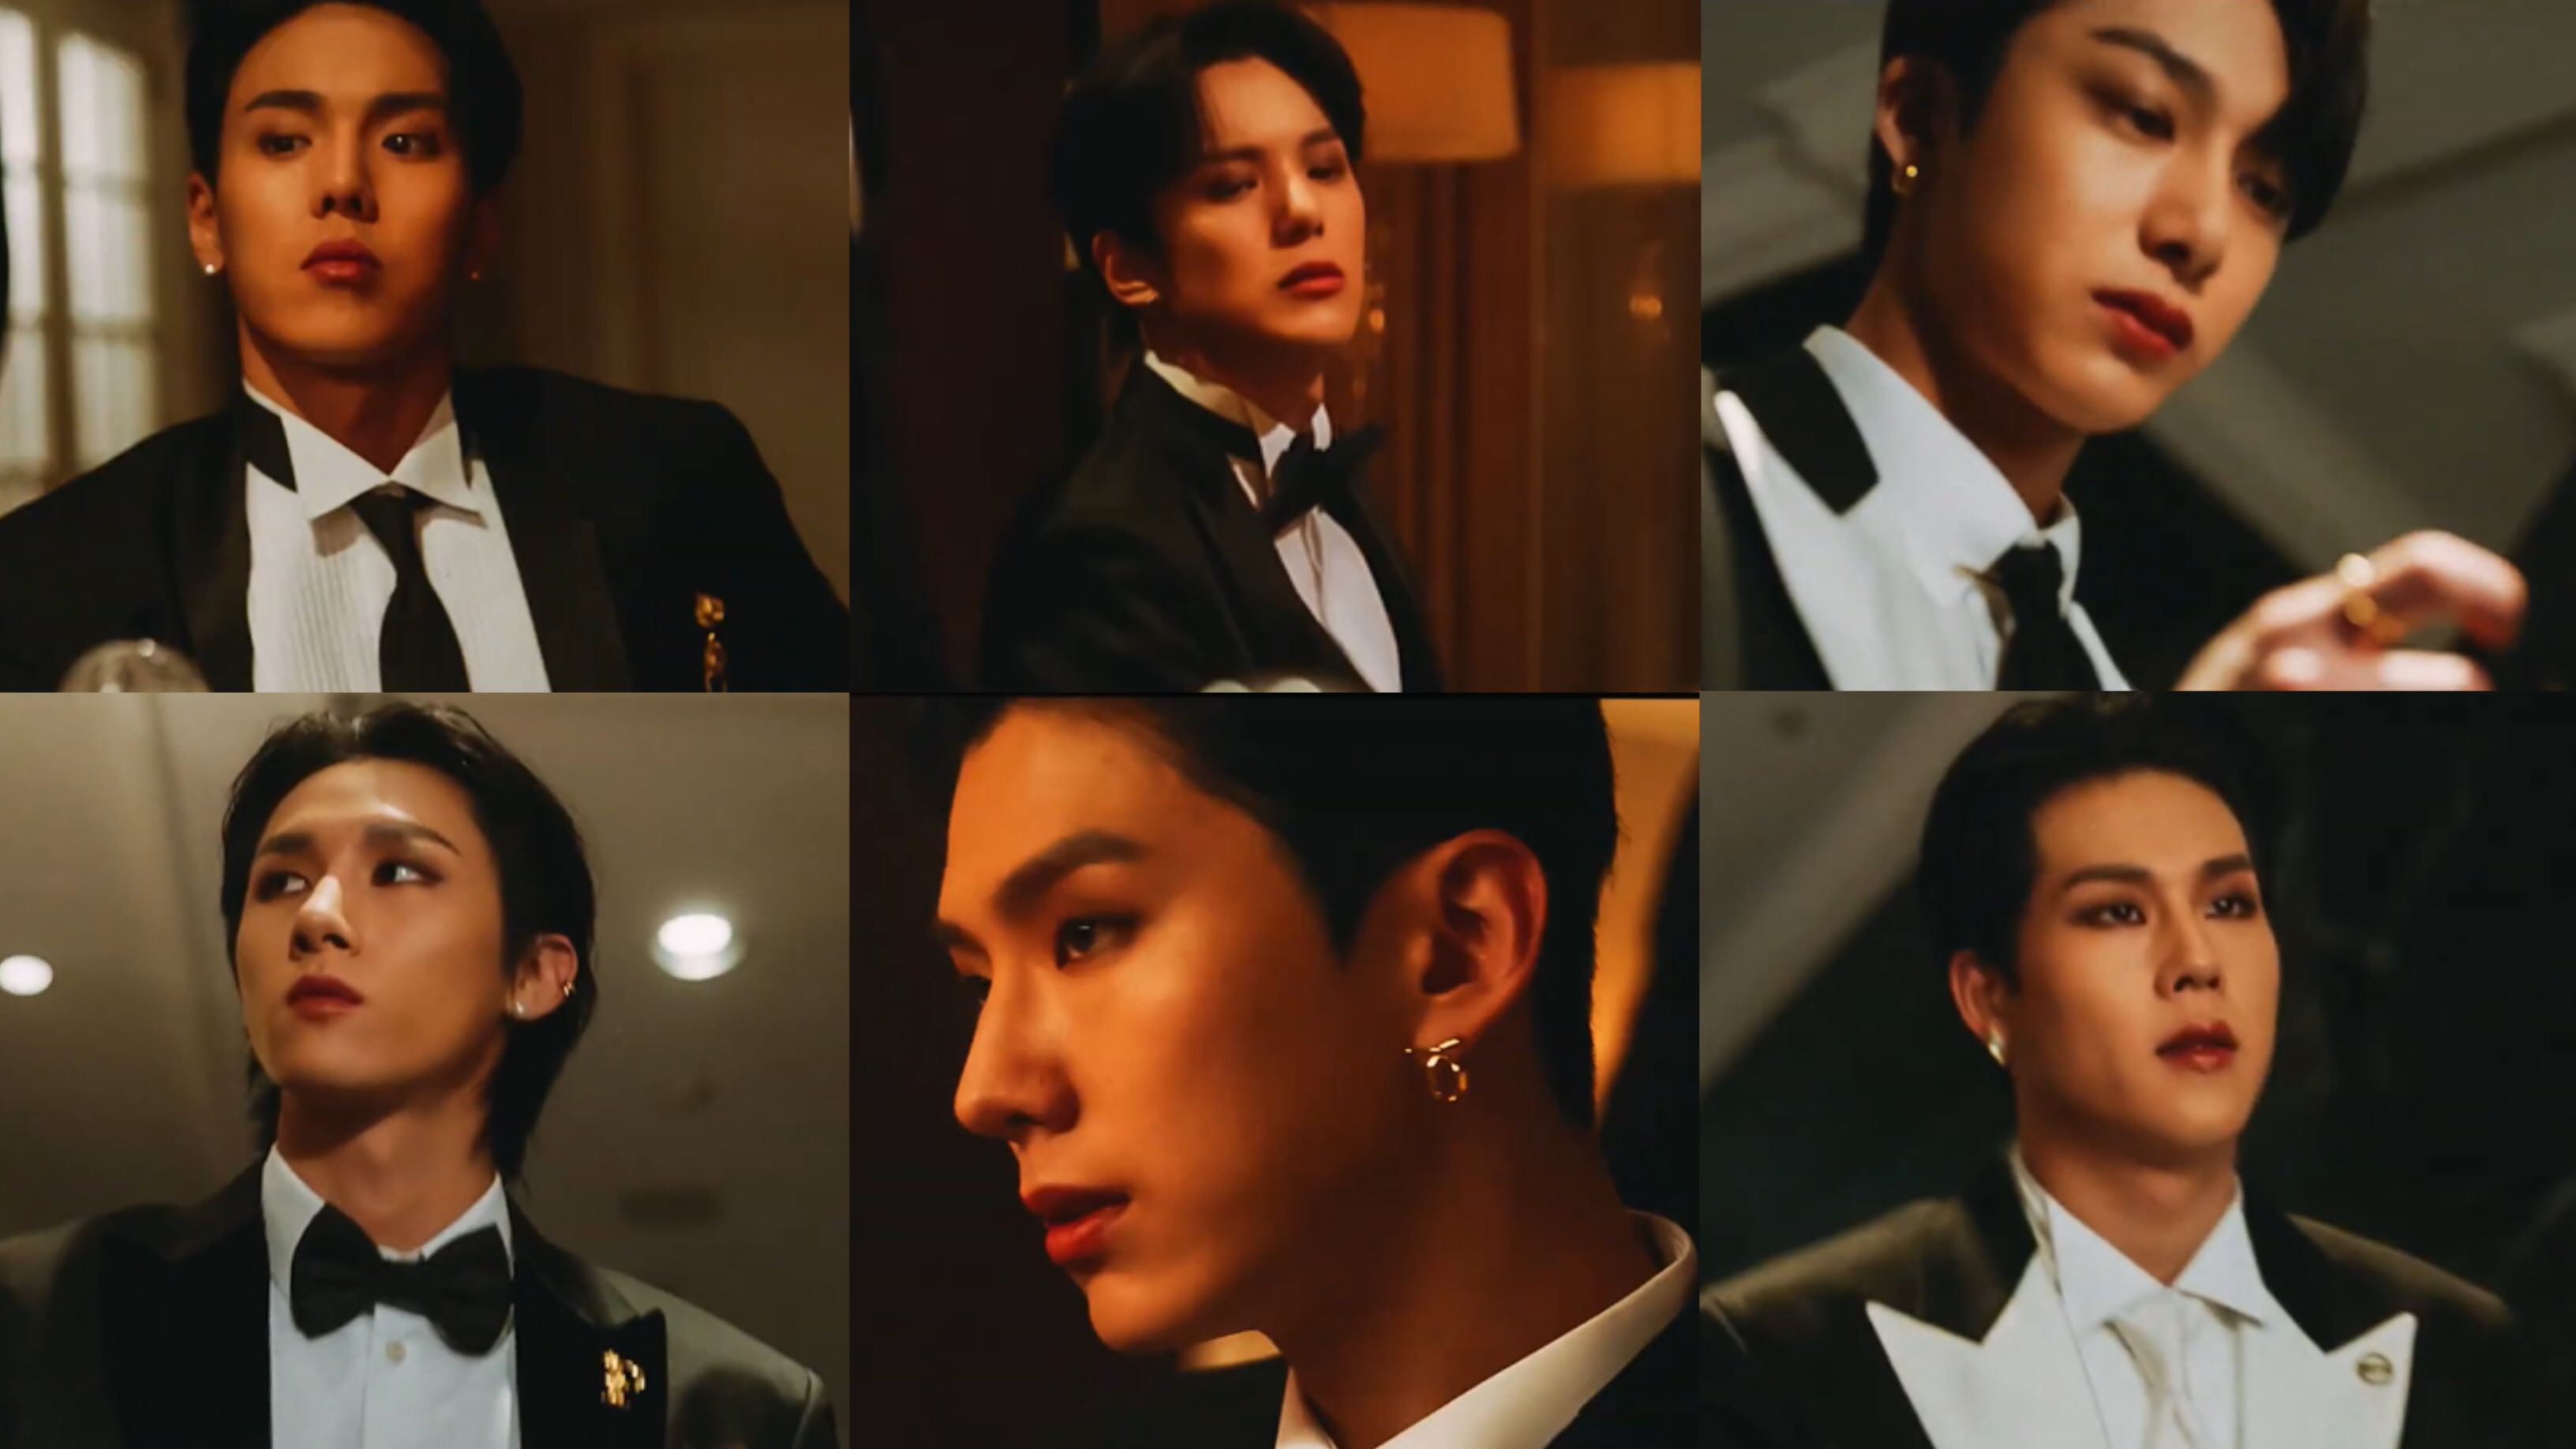 """MONSTA X Slays With Their Lavish Styles In The Second MV Teaser For """"GAMBLER"""""""